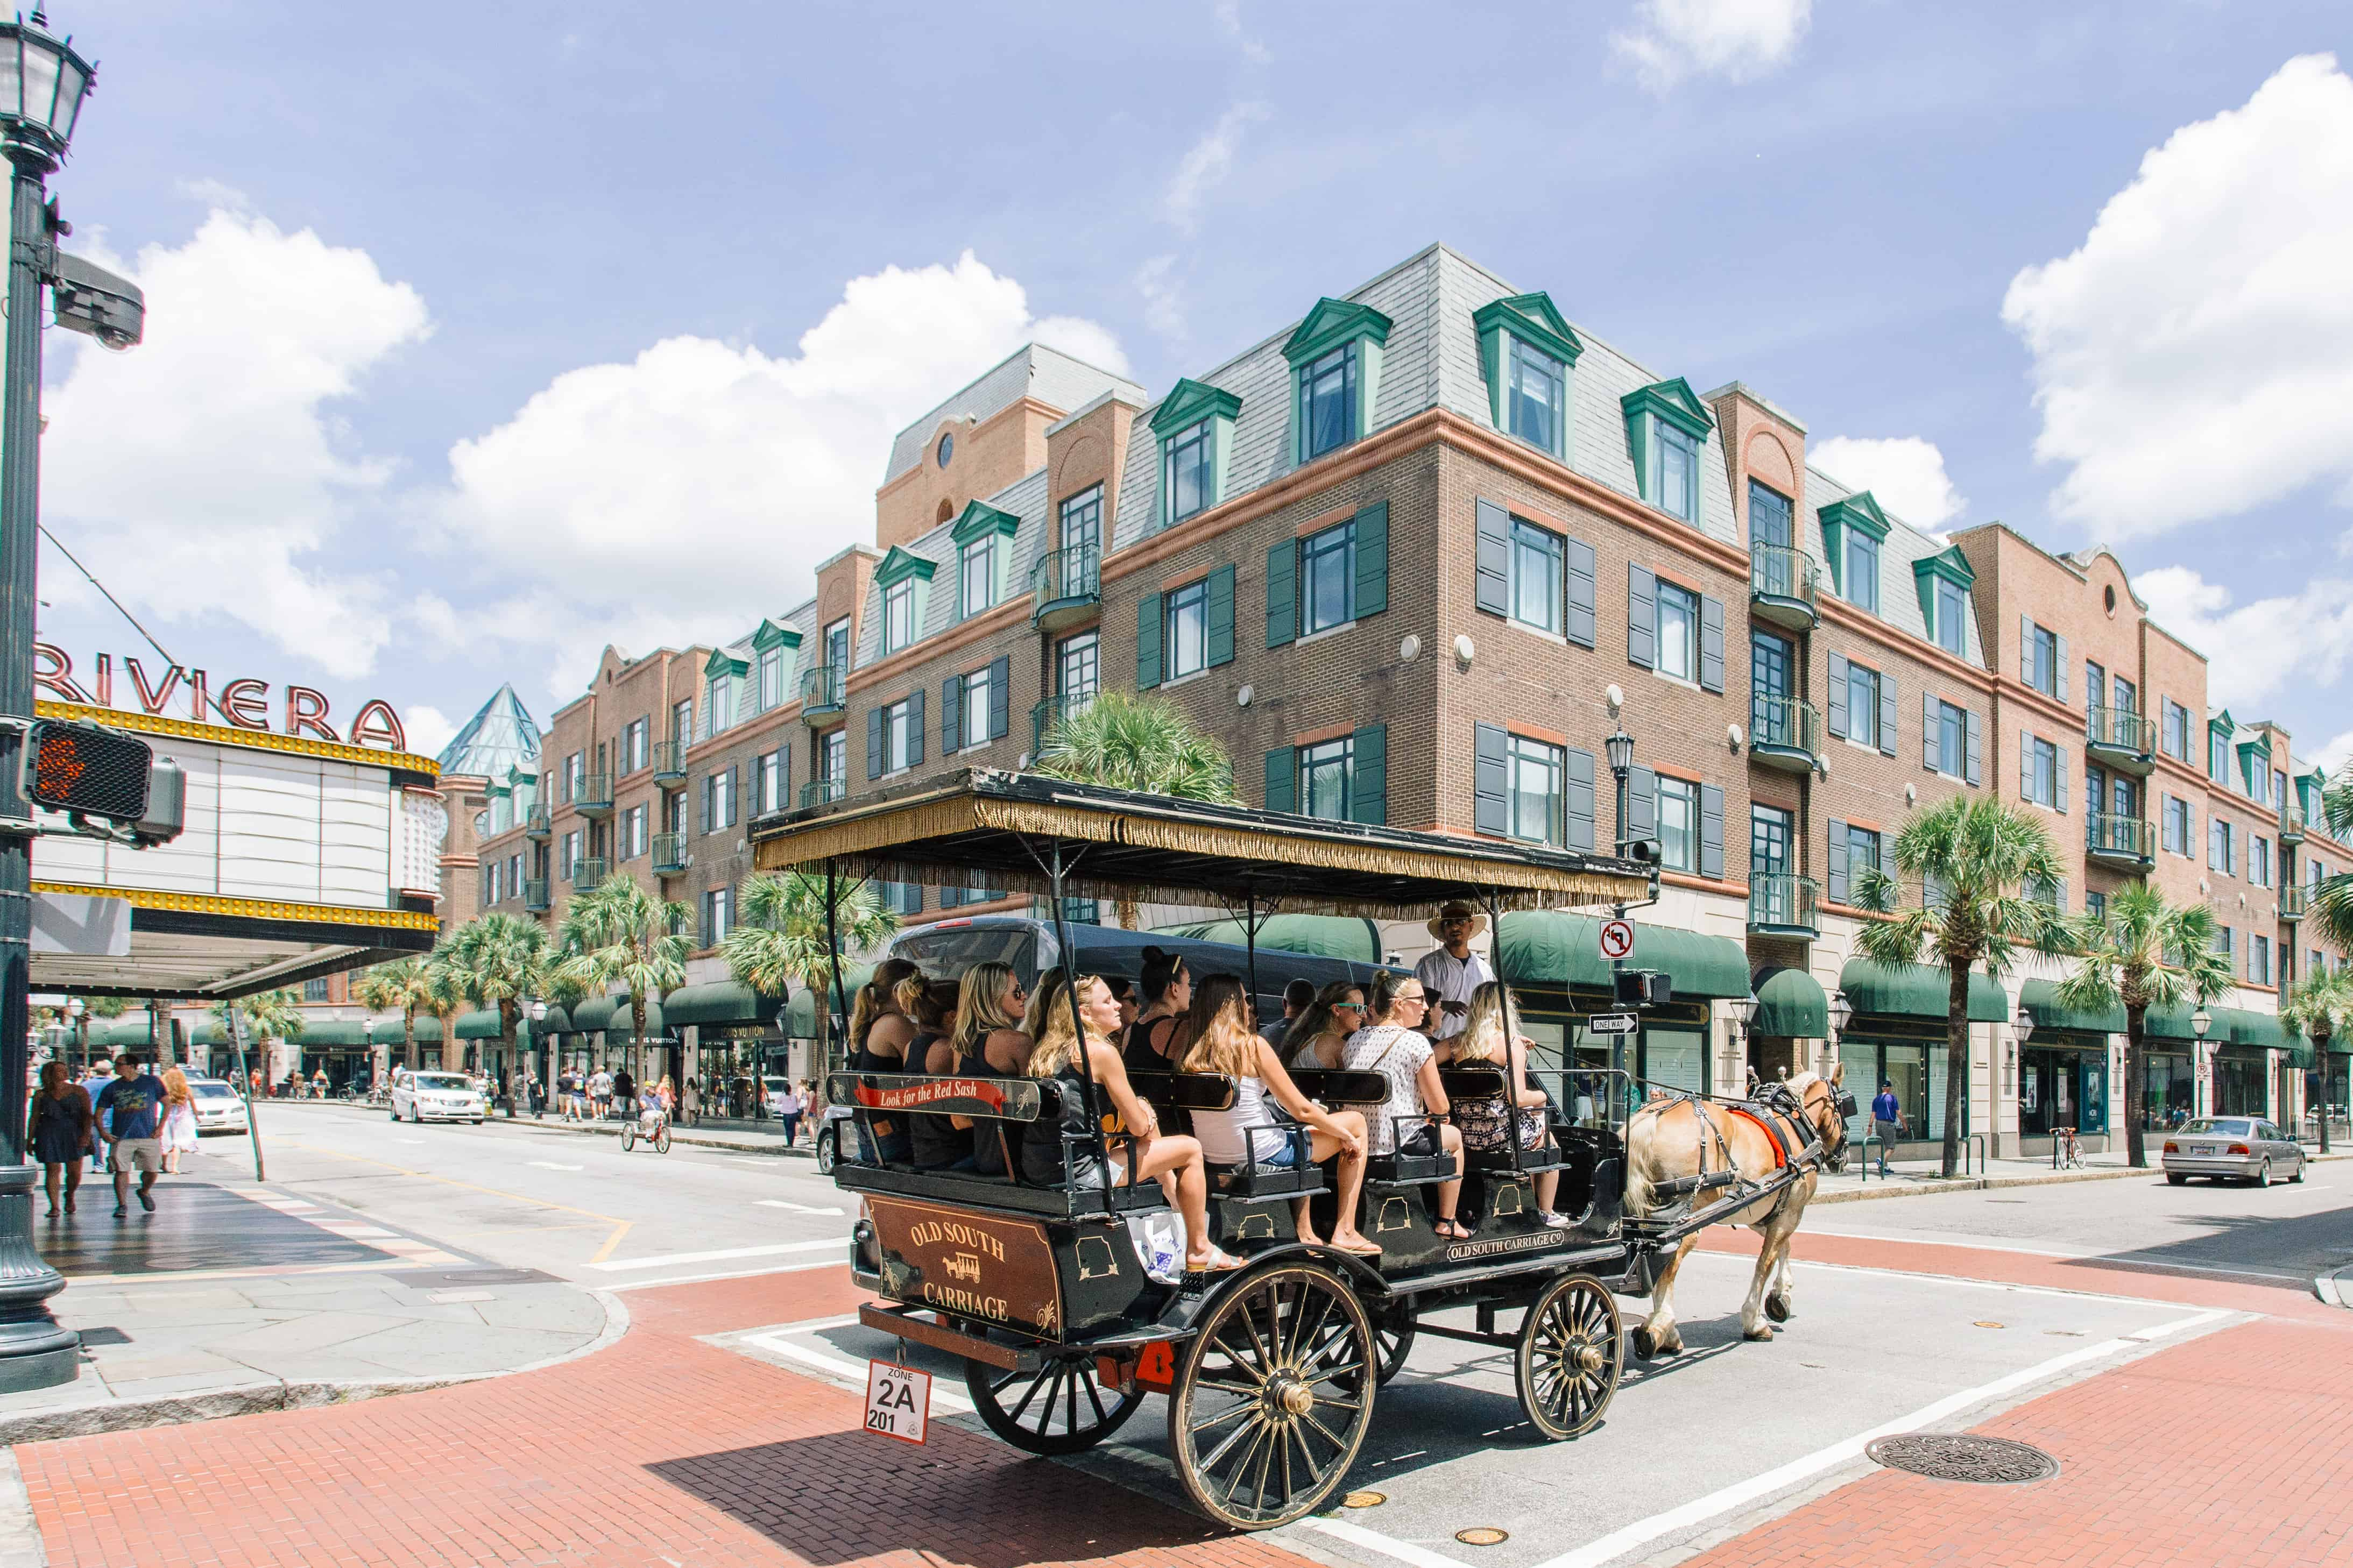 10 things to do in charleston south carolina fashionedible for What to do in summerville sc